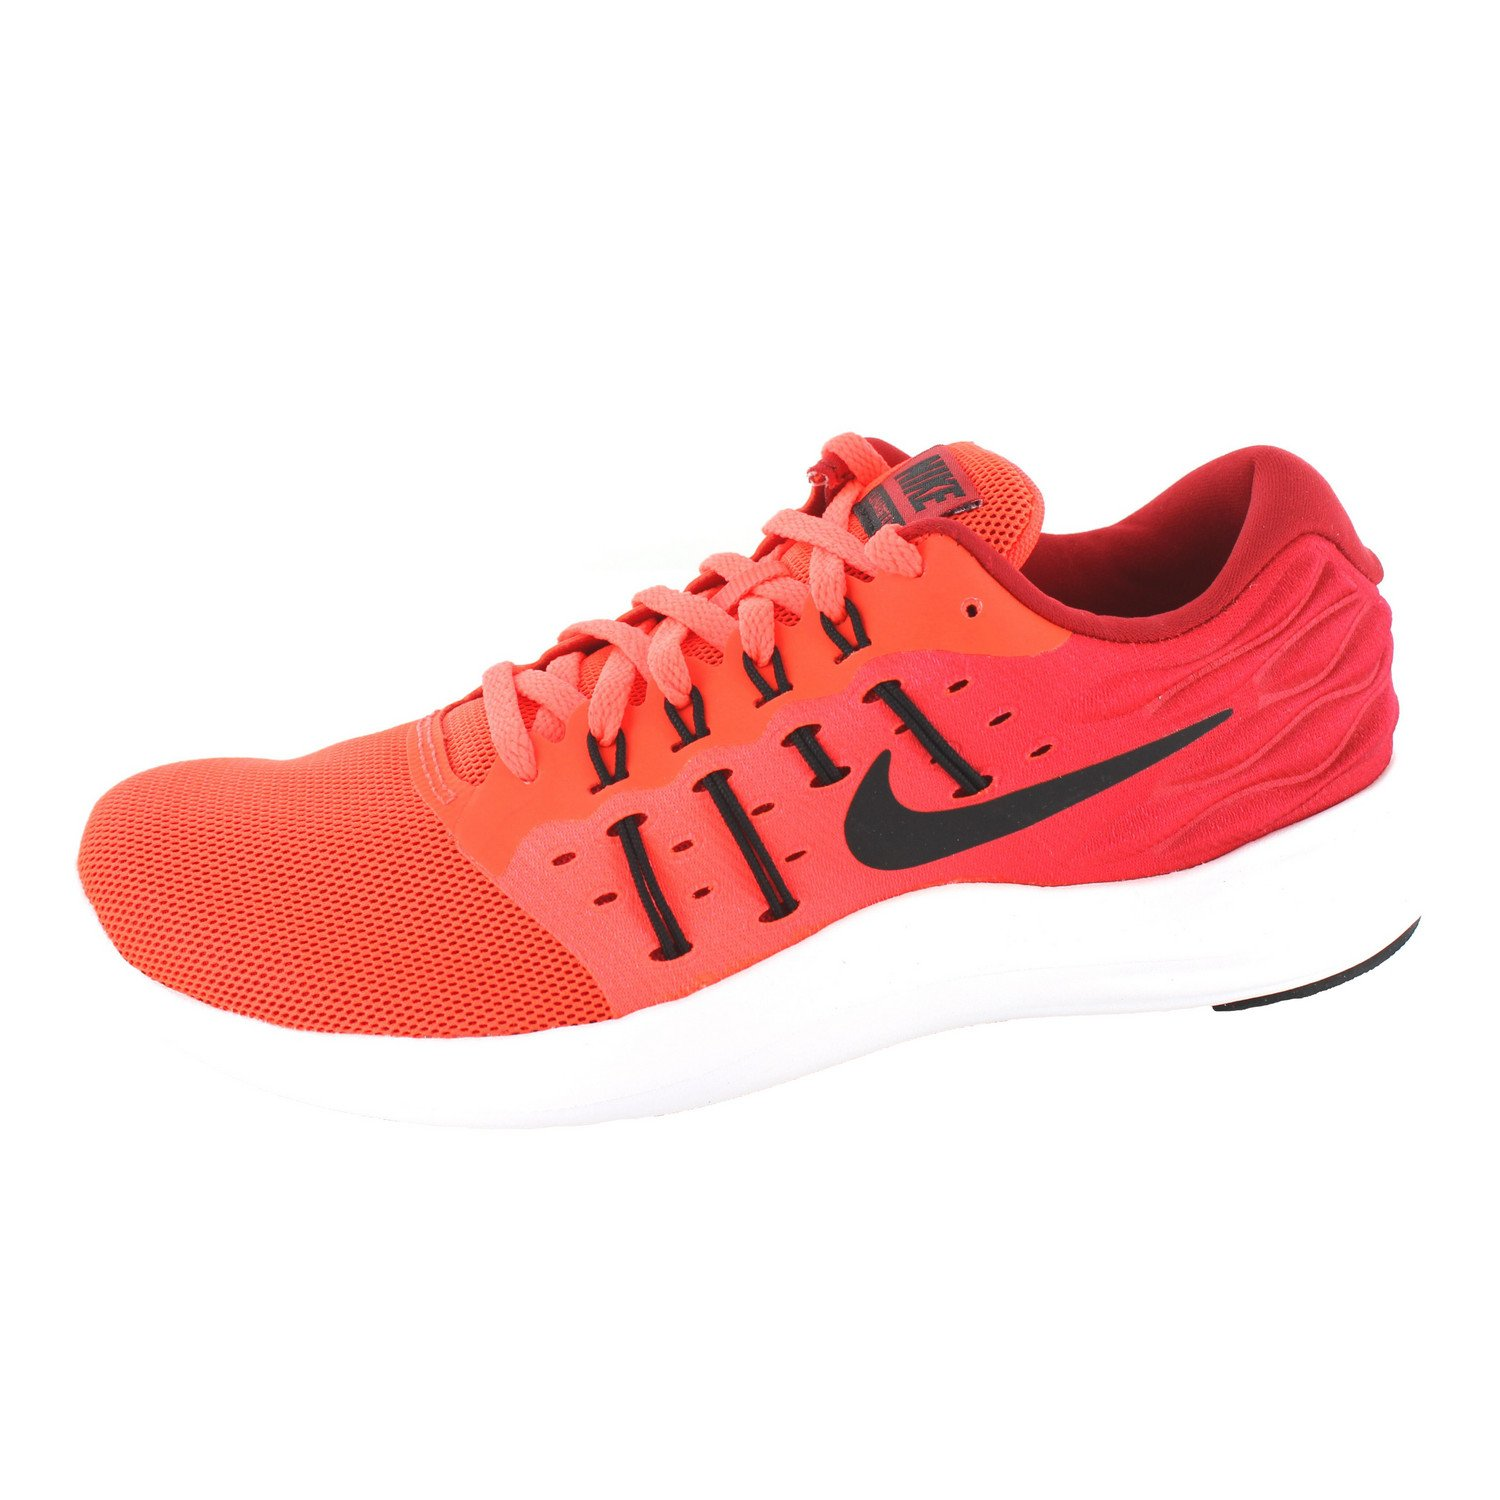 Nike Lunarstelos, Zapatillas de Running para Hombre 40 EU|Rojo (Total Crimson / Black-gym Red-white)